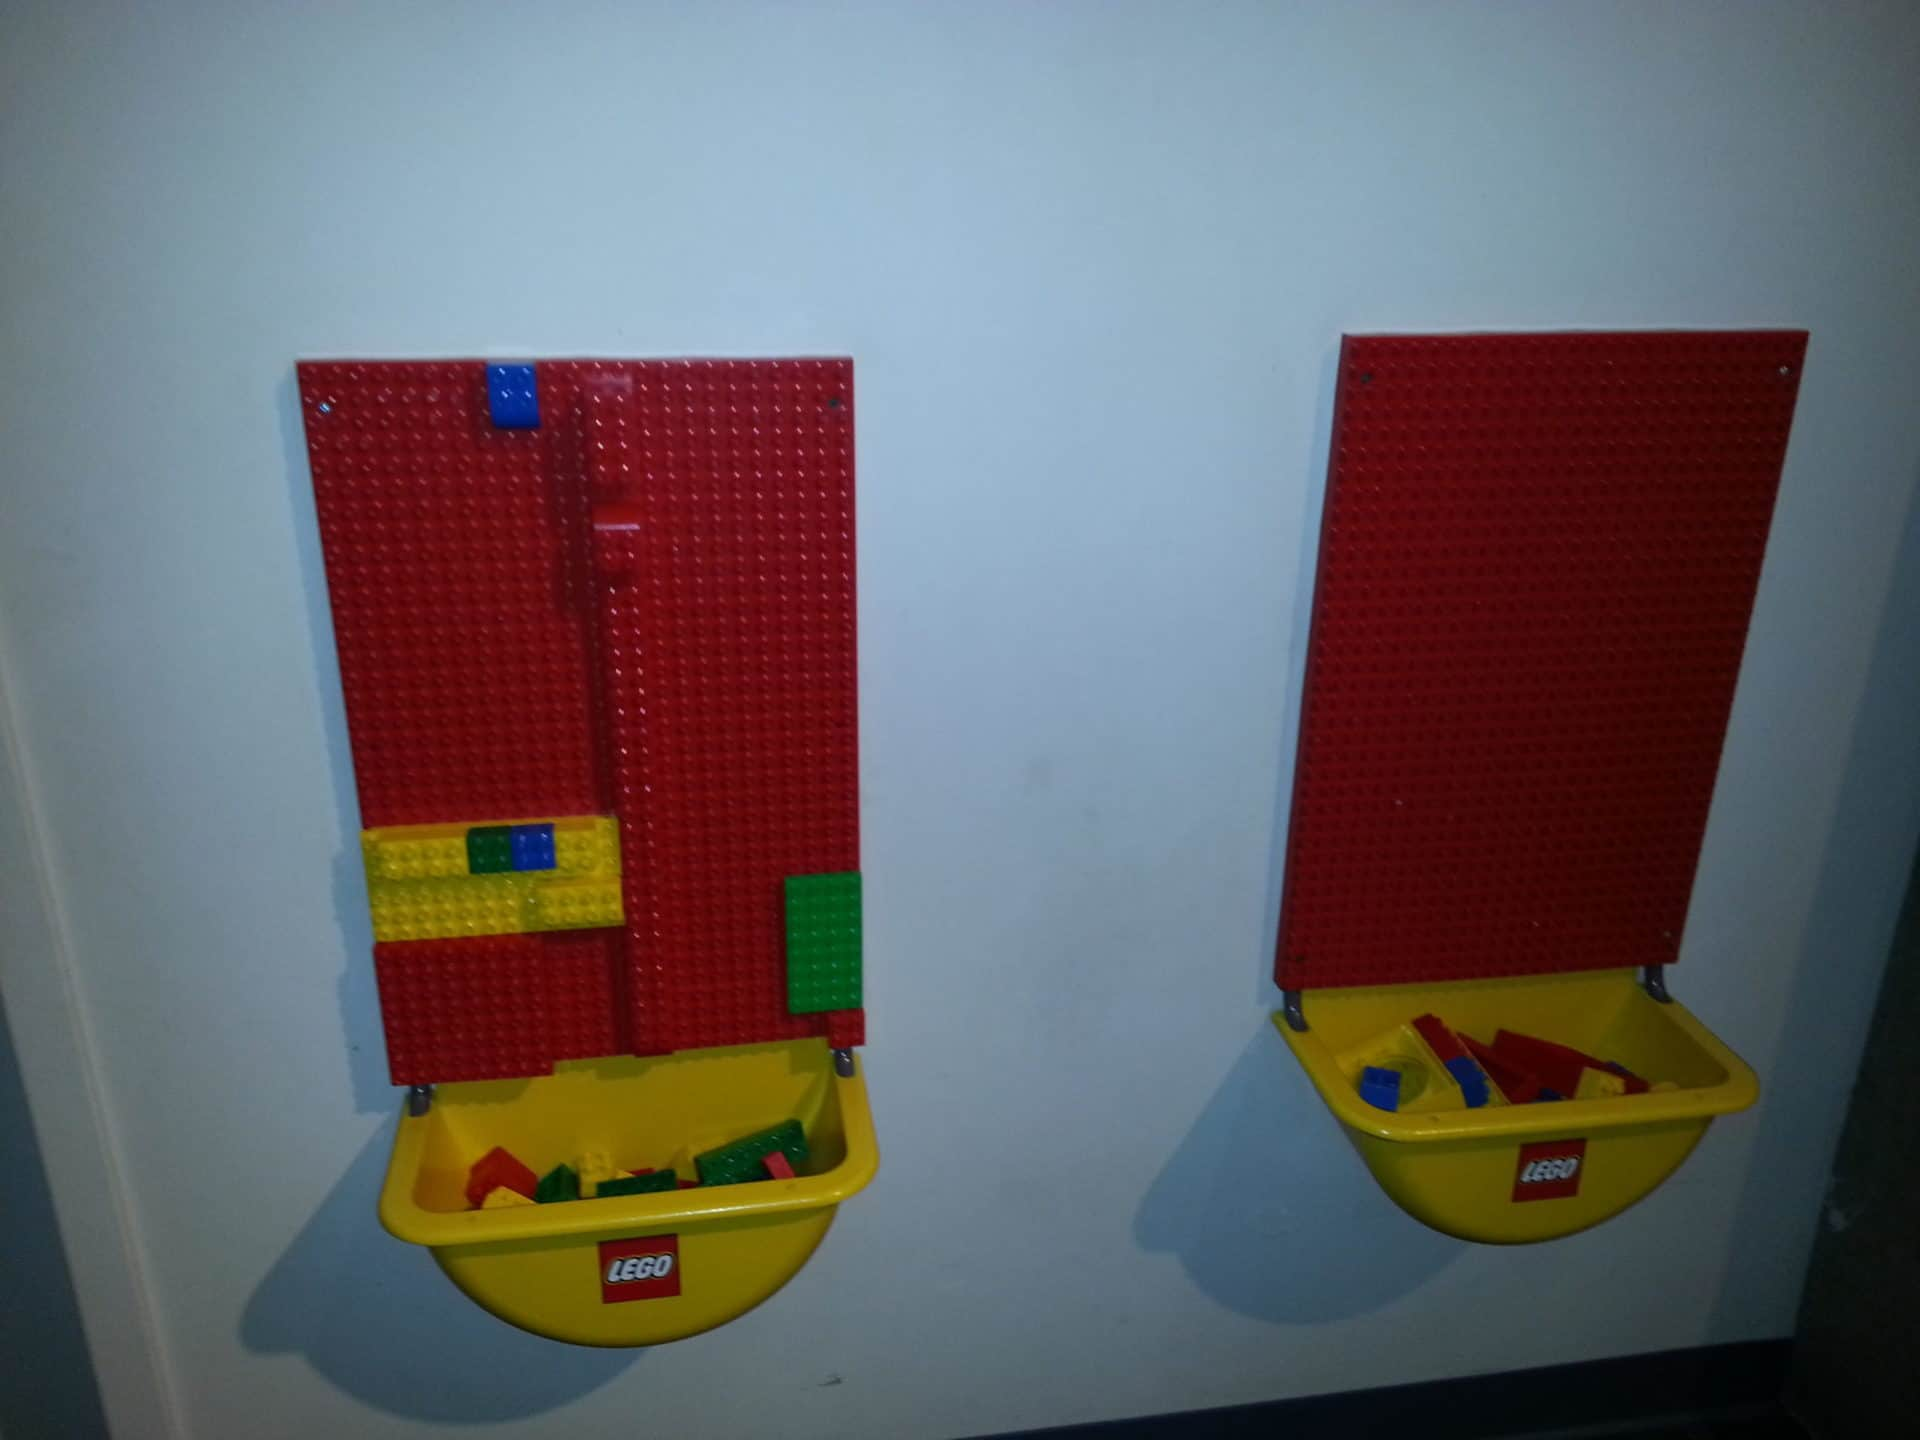 St Louis Science Center - Build with Lego